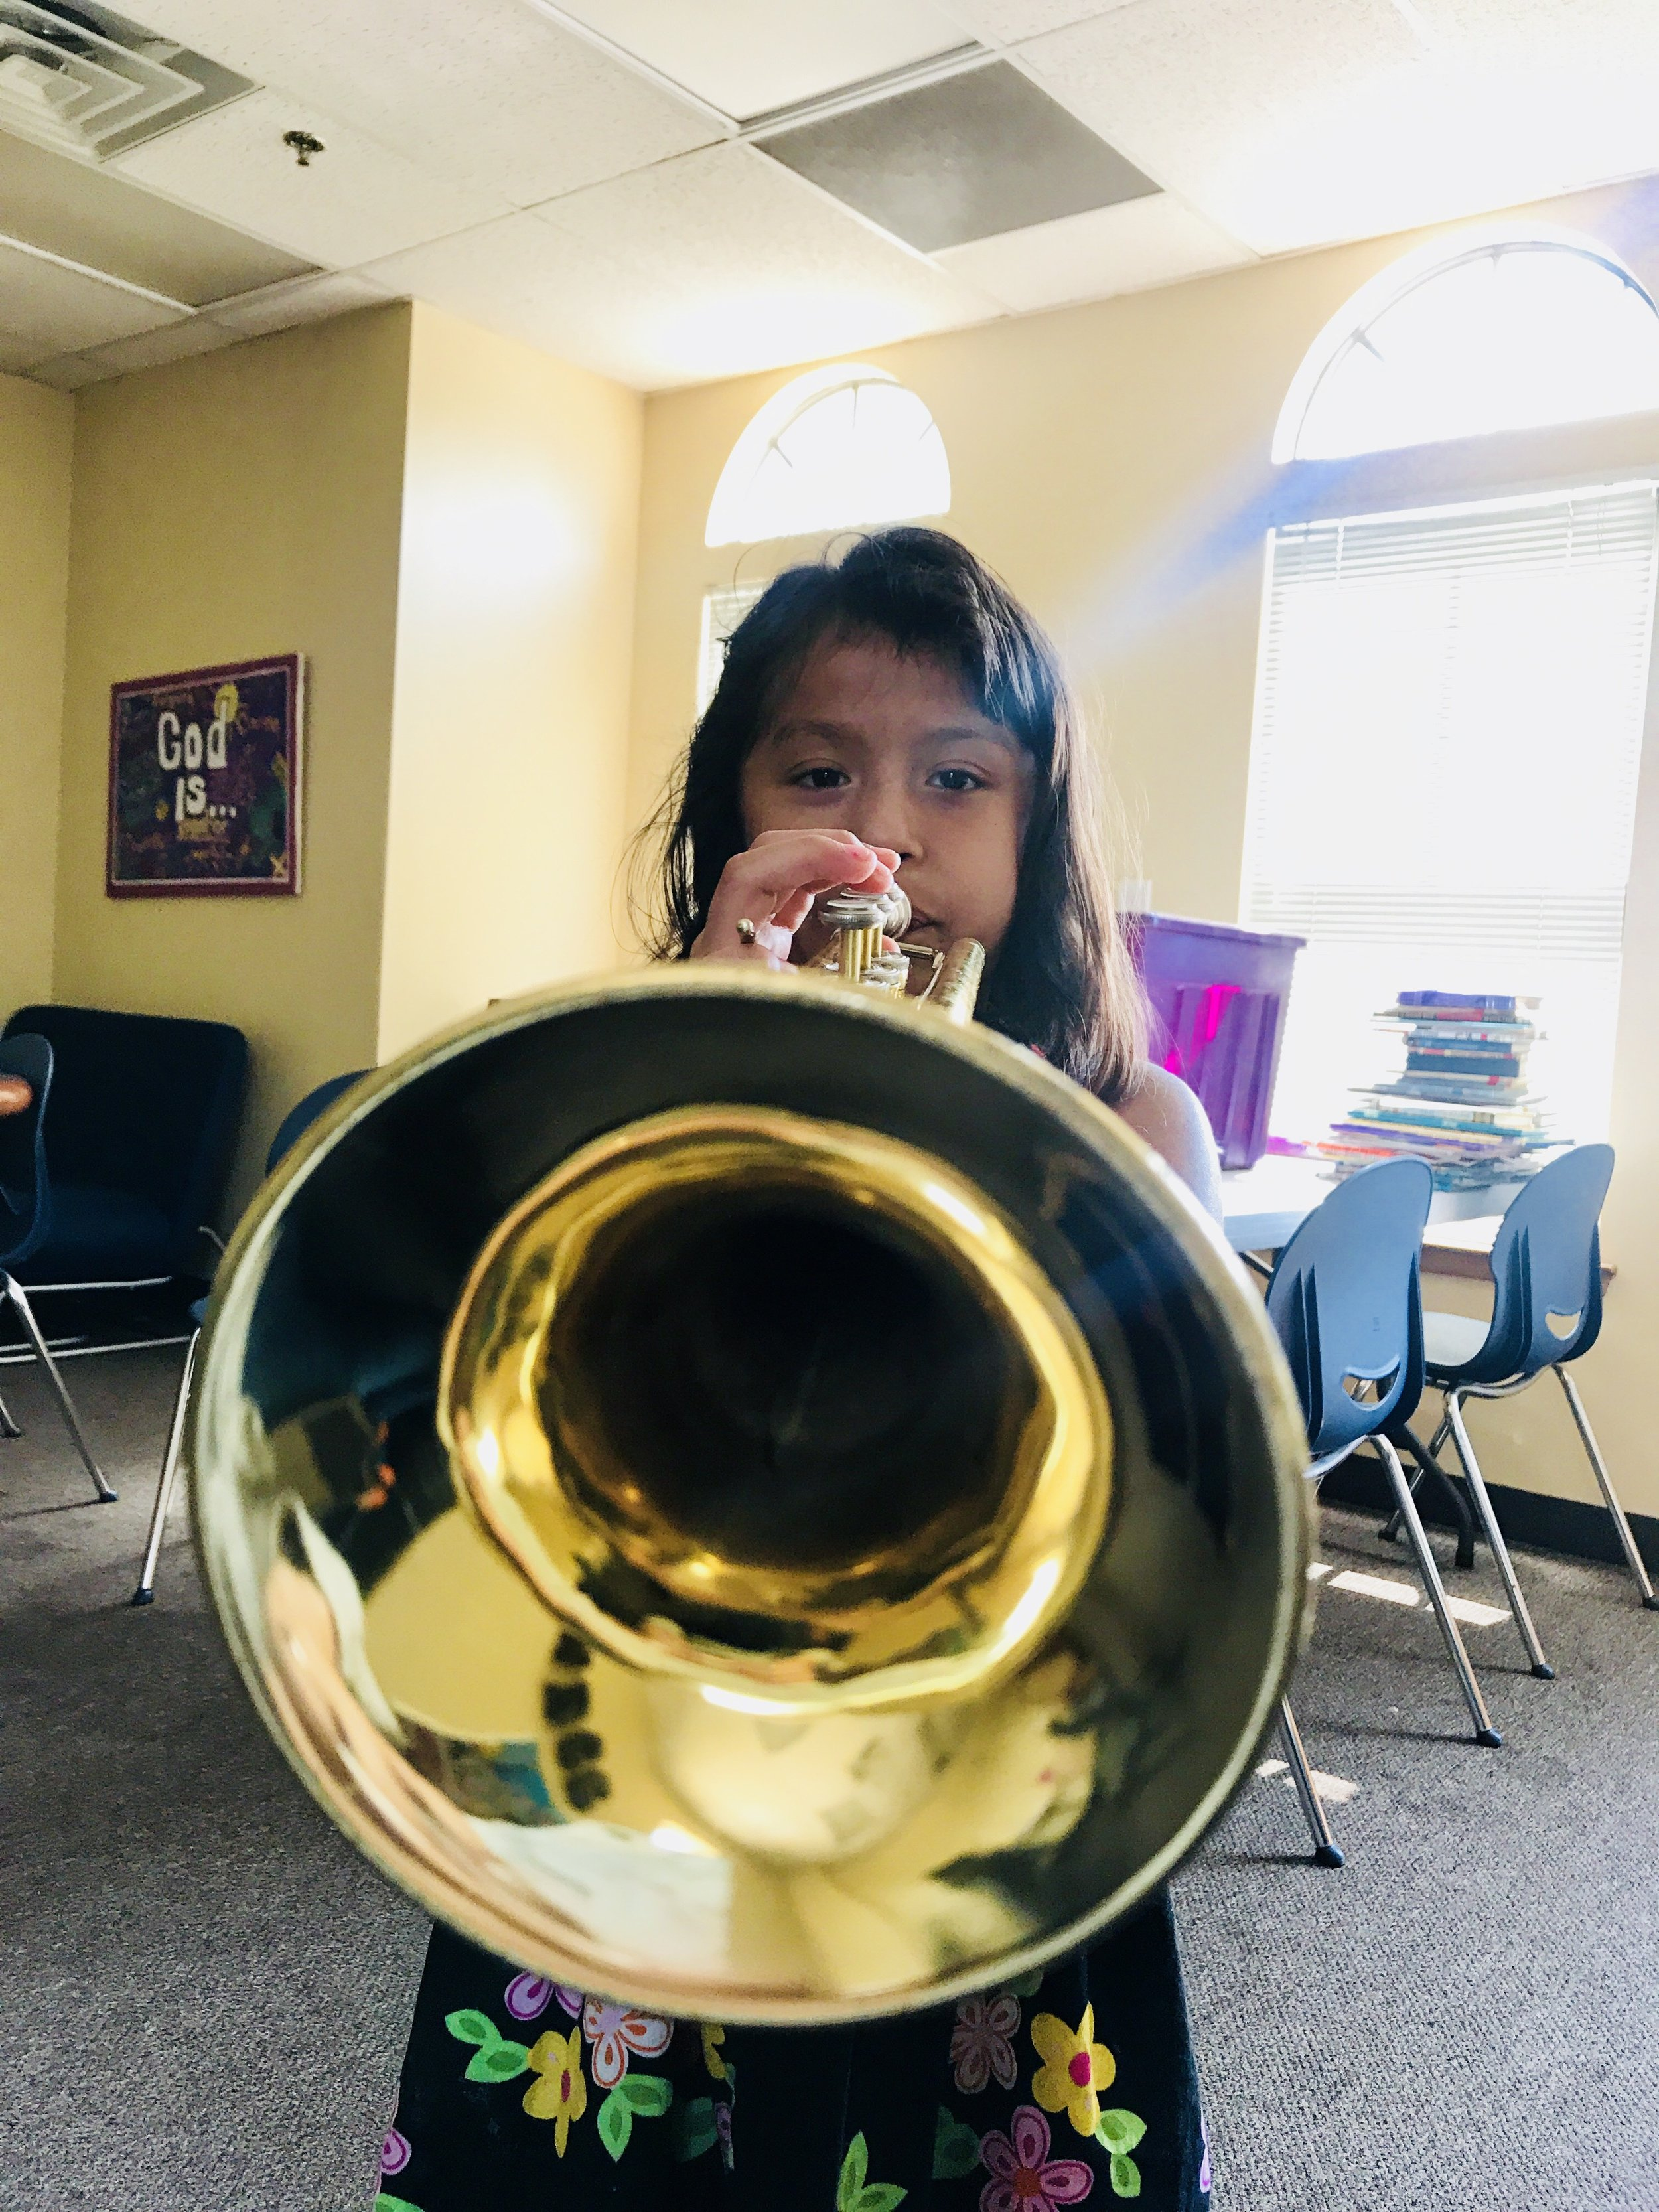 What we do - Our mission is to provide the opportunity to play and experience music for our local community. Based in Plano, TX, north of Dallas, we strive to spread access to music because we believe it is deserved by all.Learn More